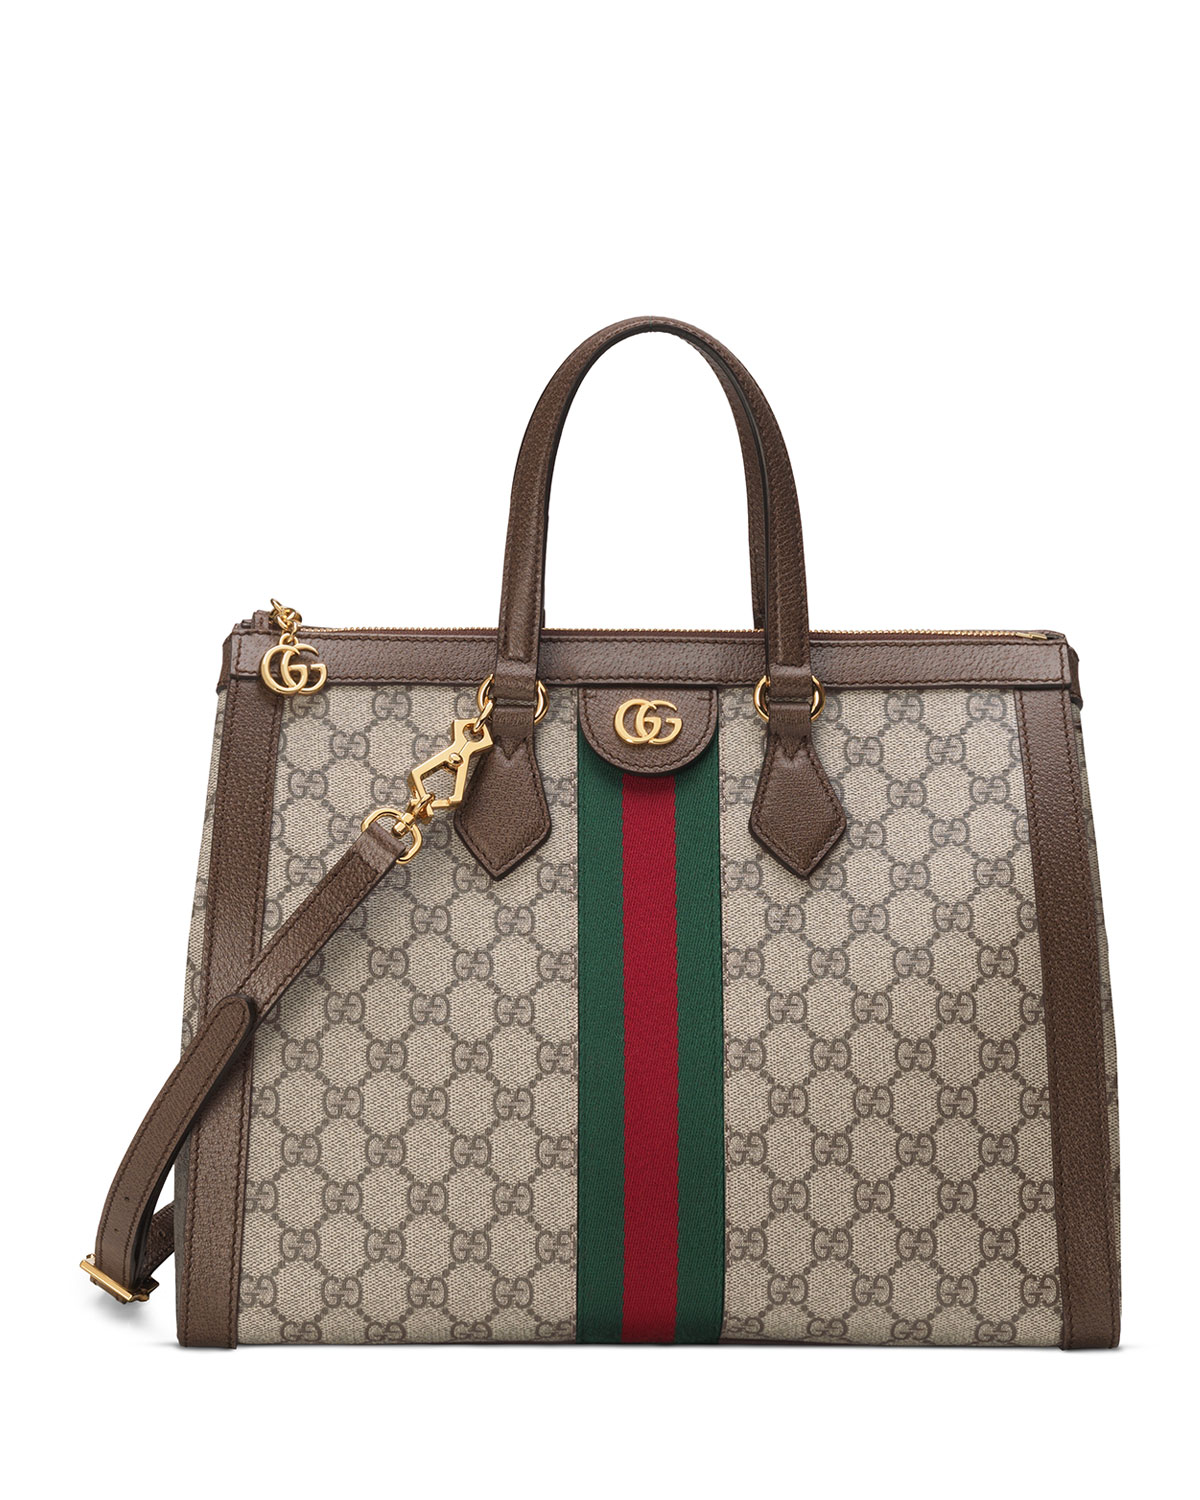 77b3df6eb056 Gucci Ophidia Medium GG Supreme Canvas Web Top-Handle Tote Bag ...